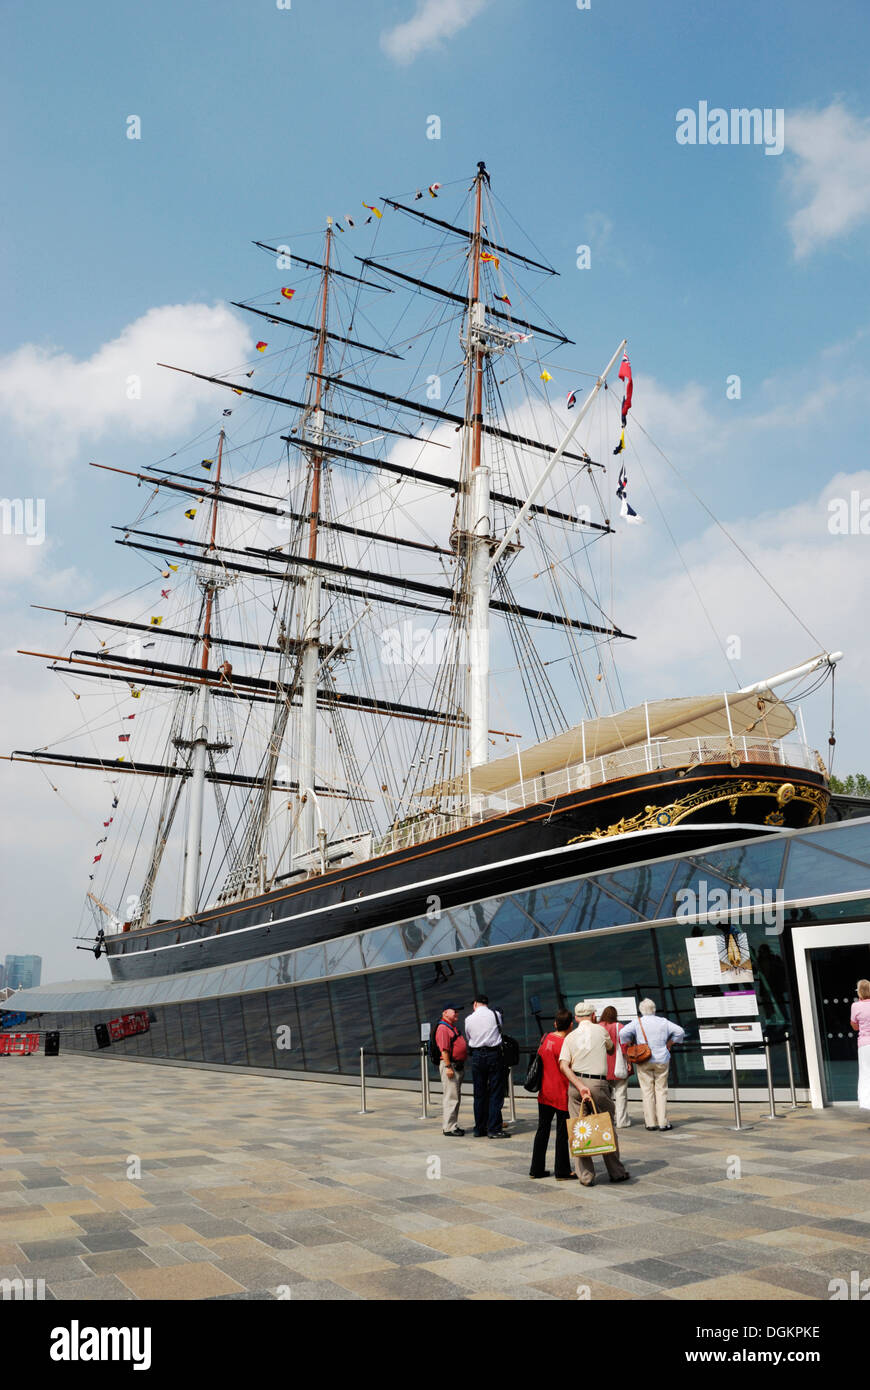 The Cutty Sark ship after its restoration lasting six years. - Stock Image